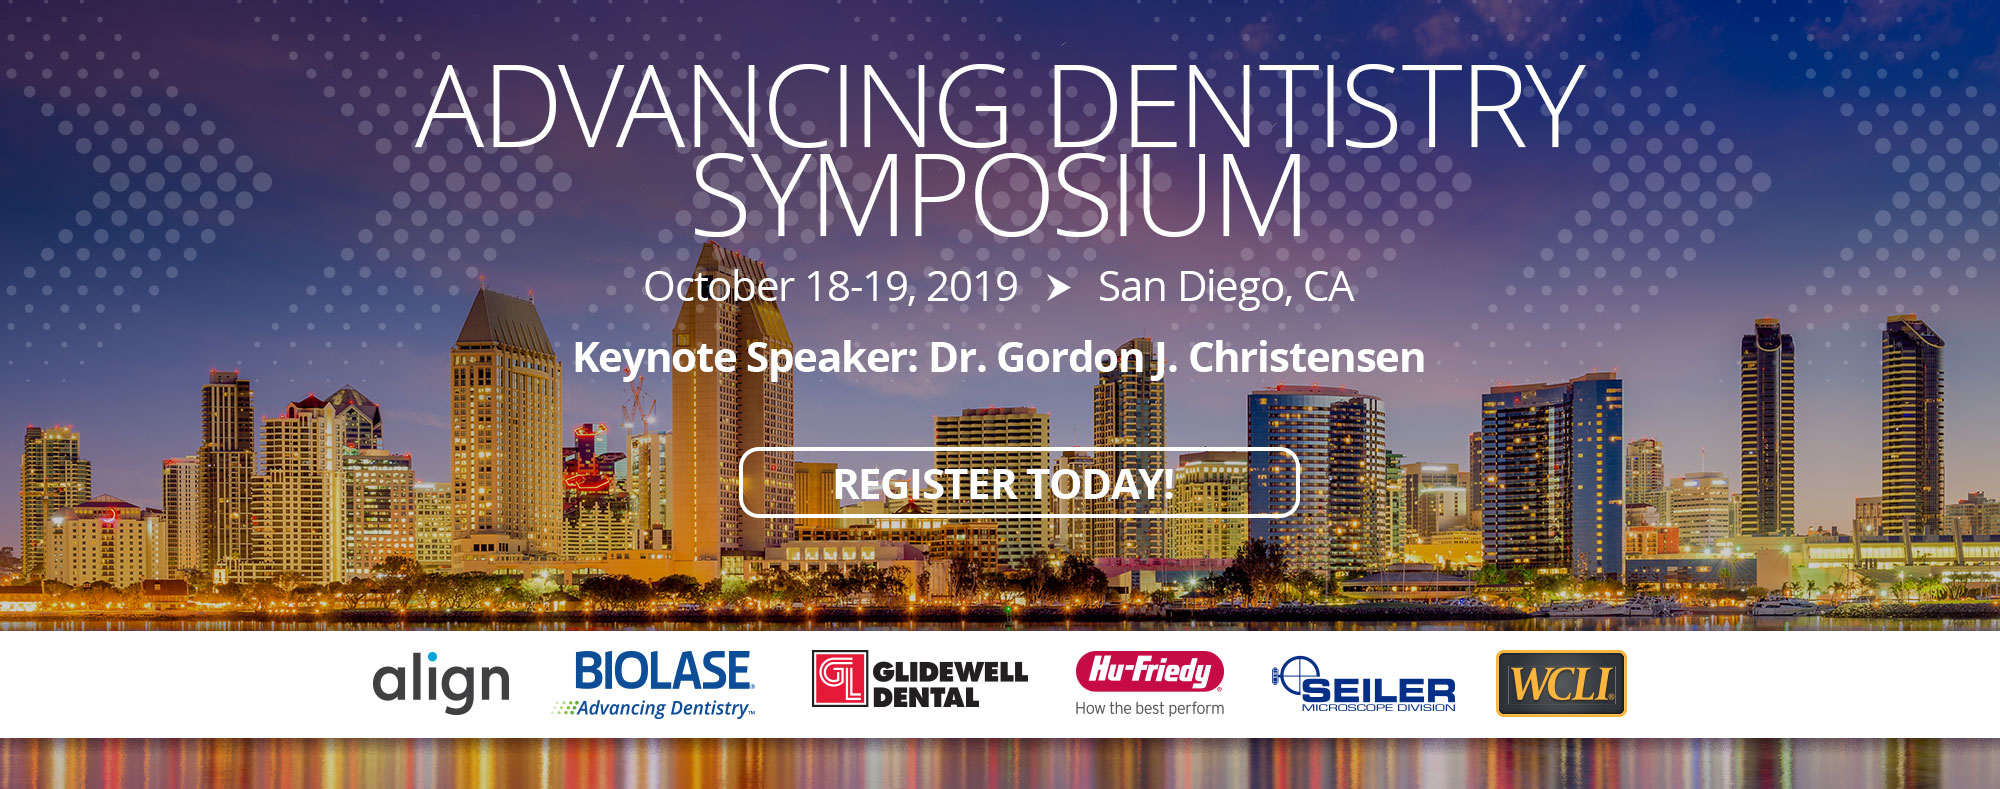 Advancing Dentistry Symposium - San Diego, CA